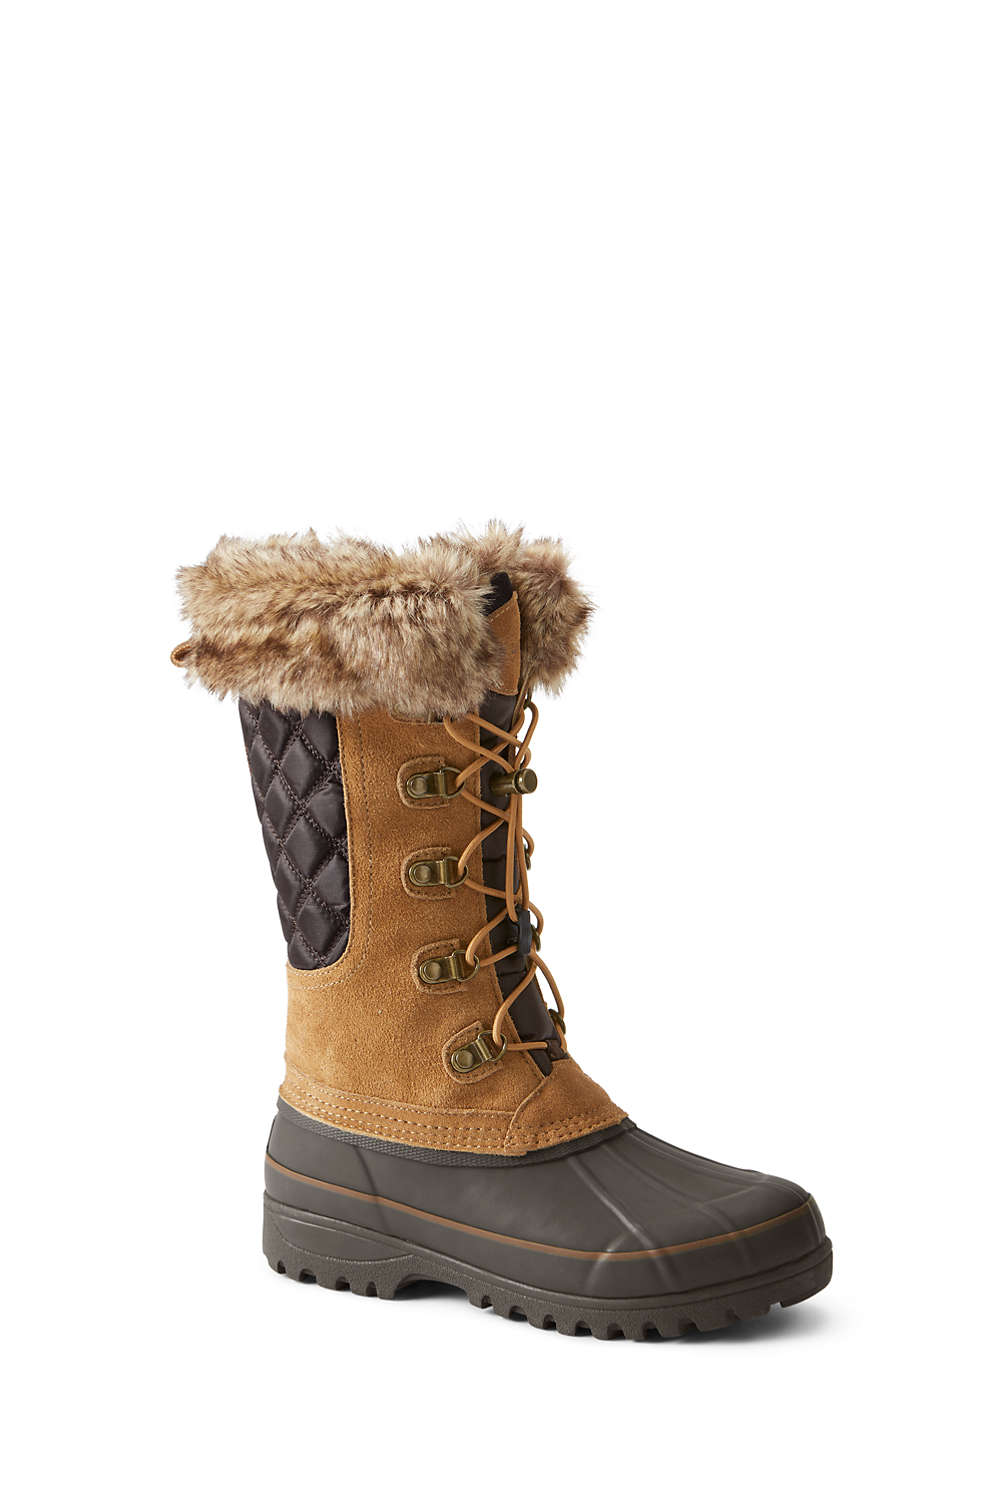 36b5e258dd5d Women s Squall Winter Snow Boots from Lands  End